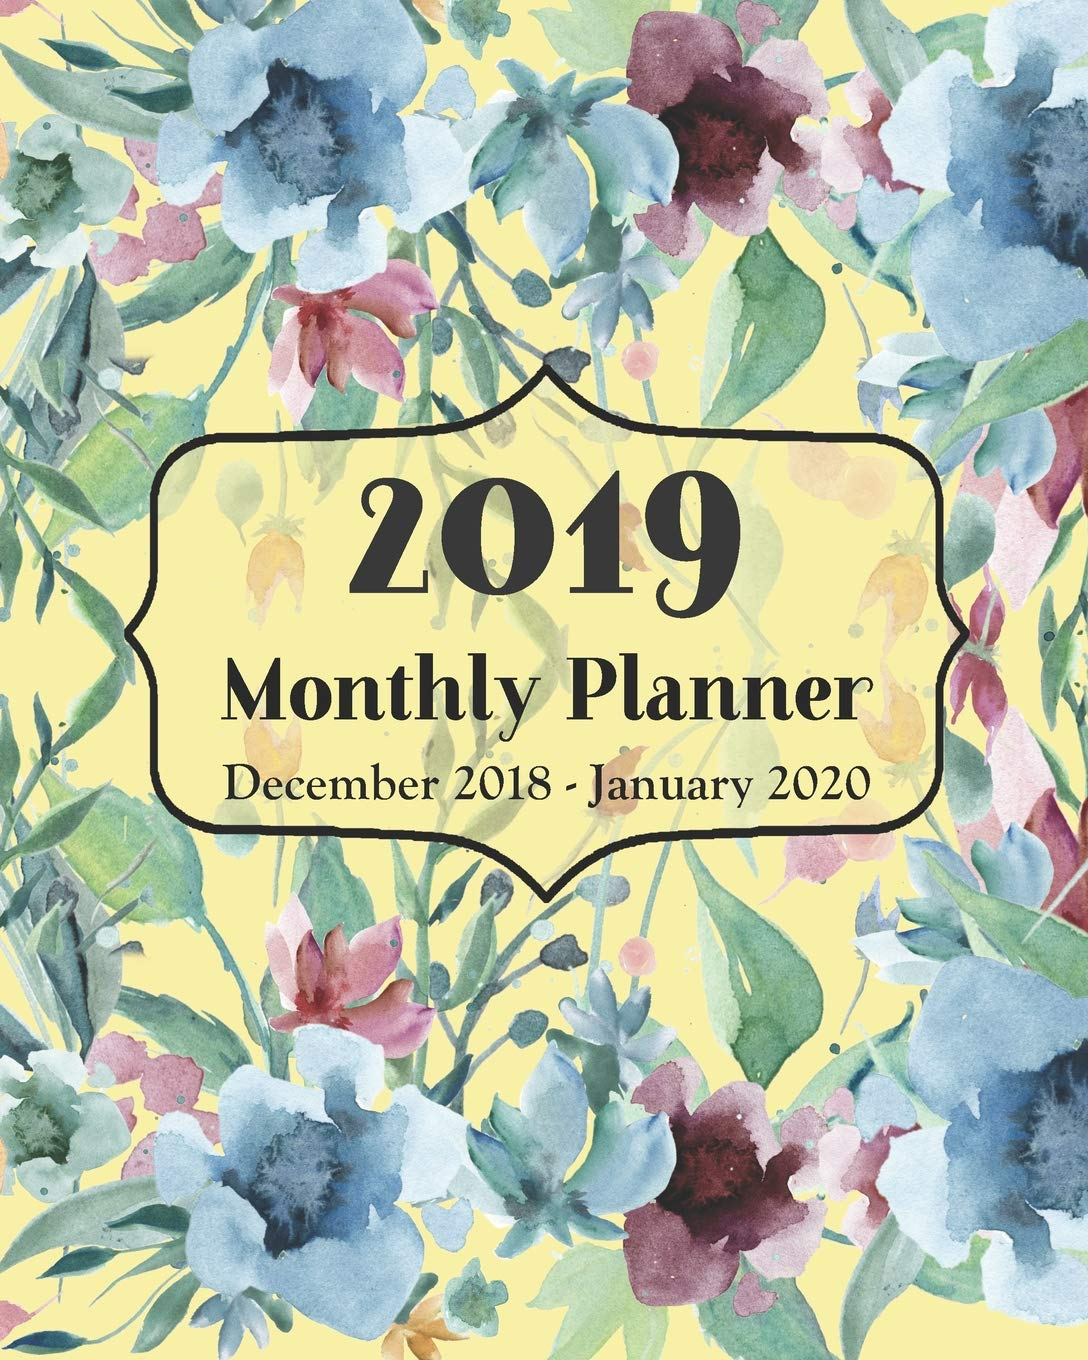 2019 Monthly Planner December 2018 - January 2020: 14 Month ...